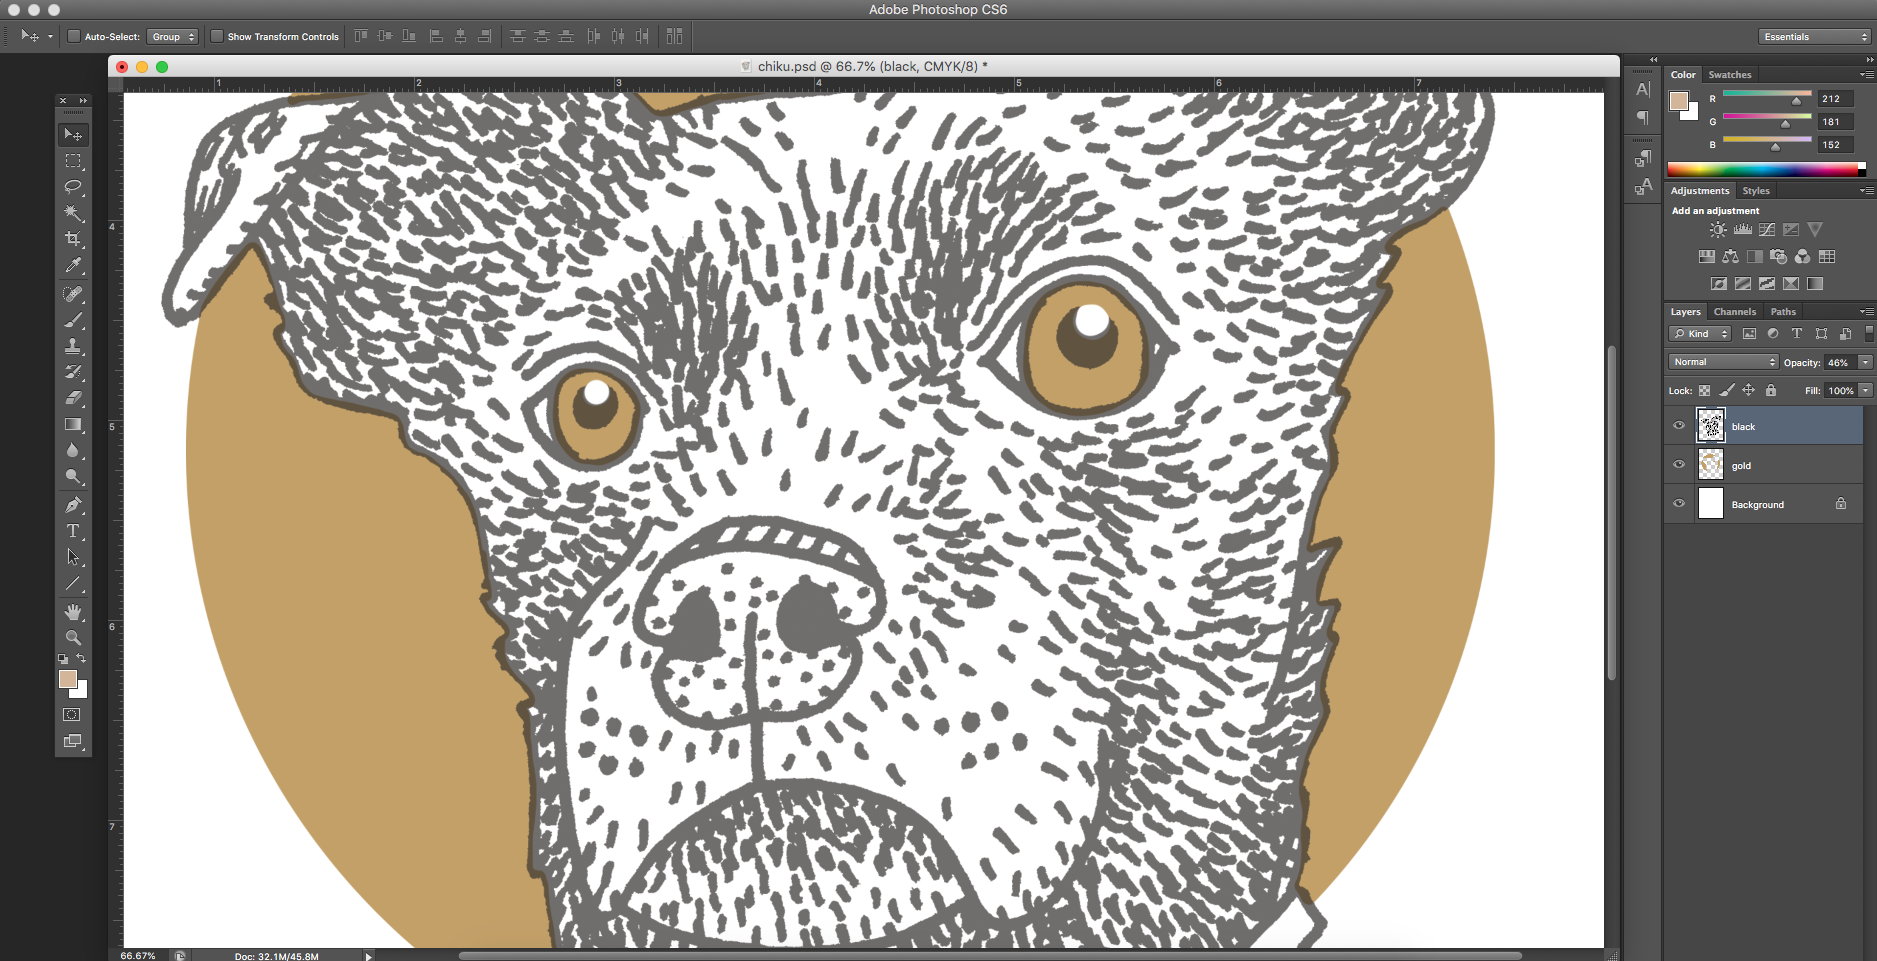 Working on the layers in Photoshop